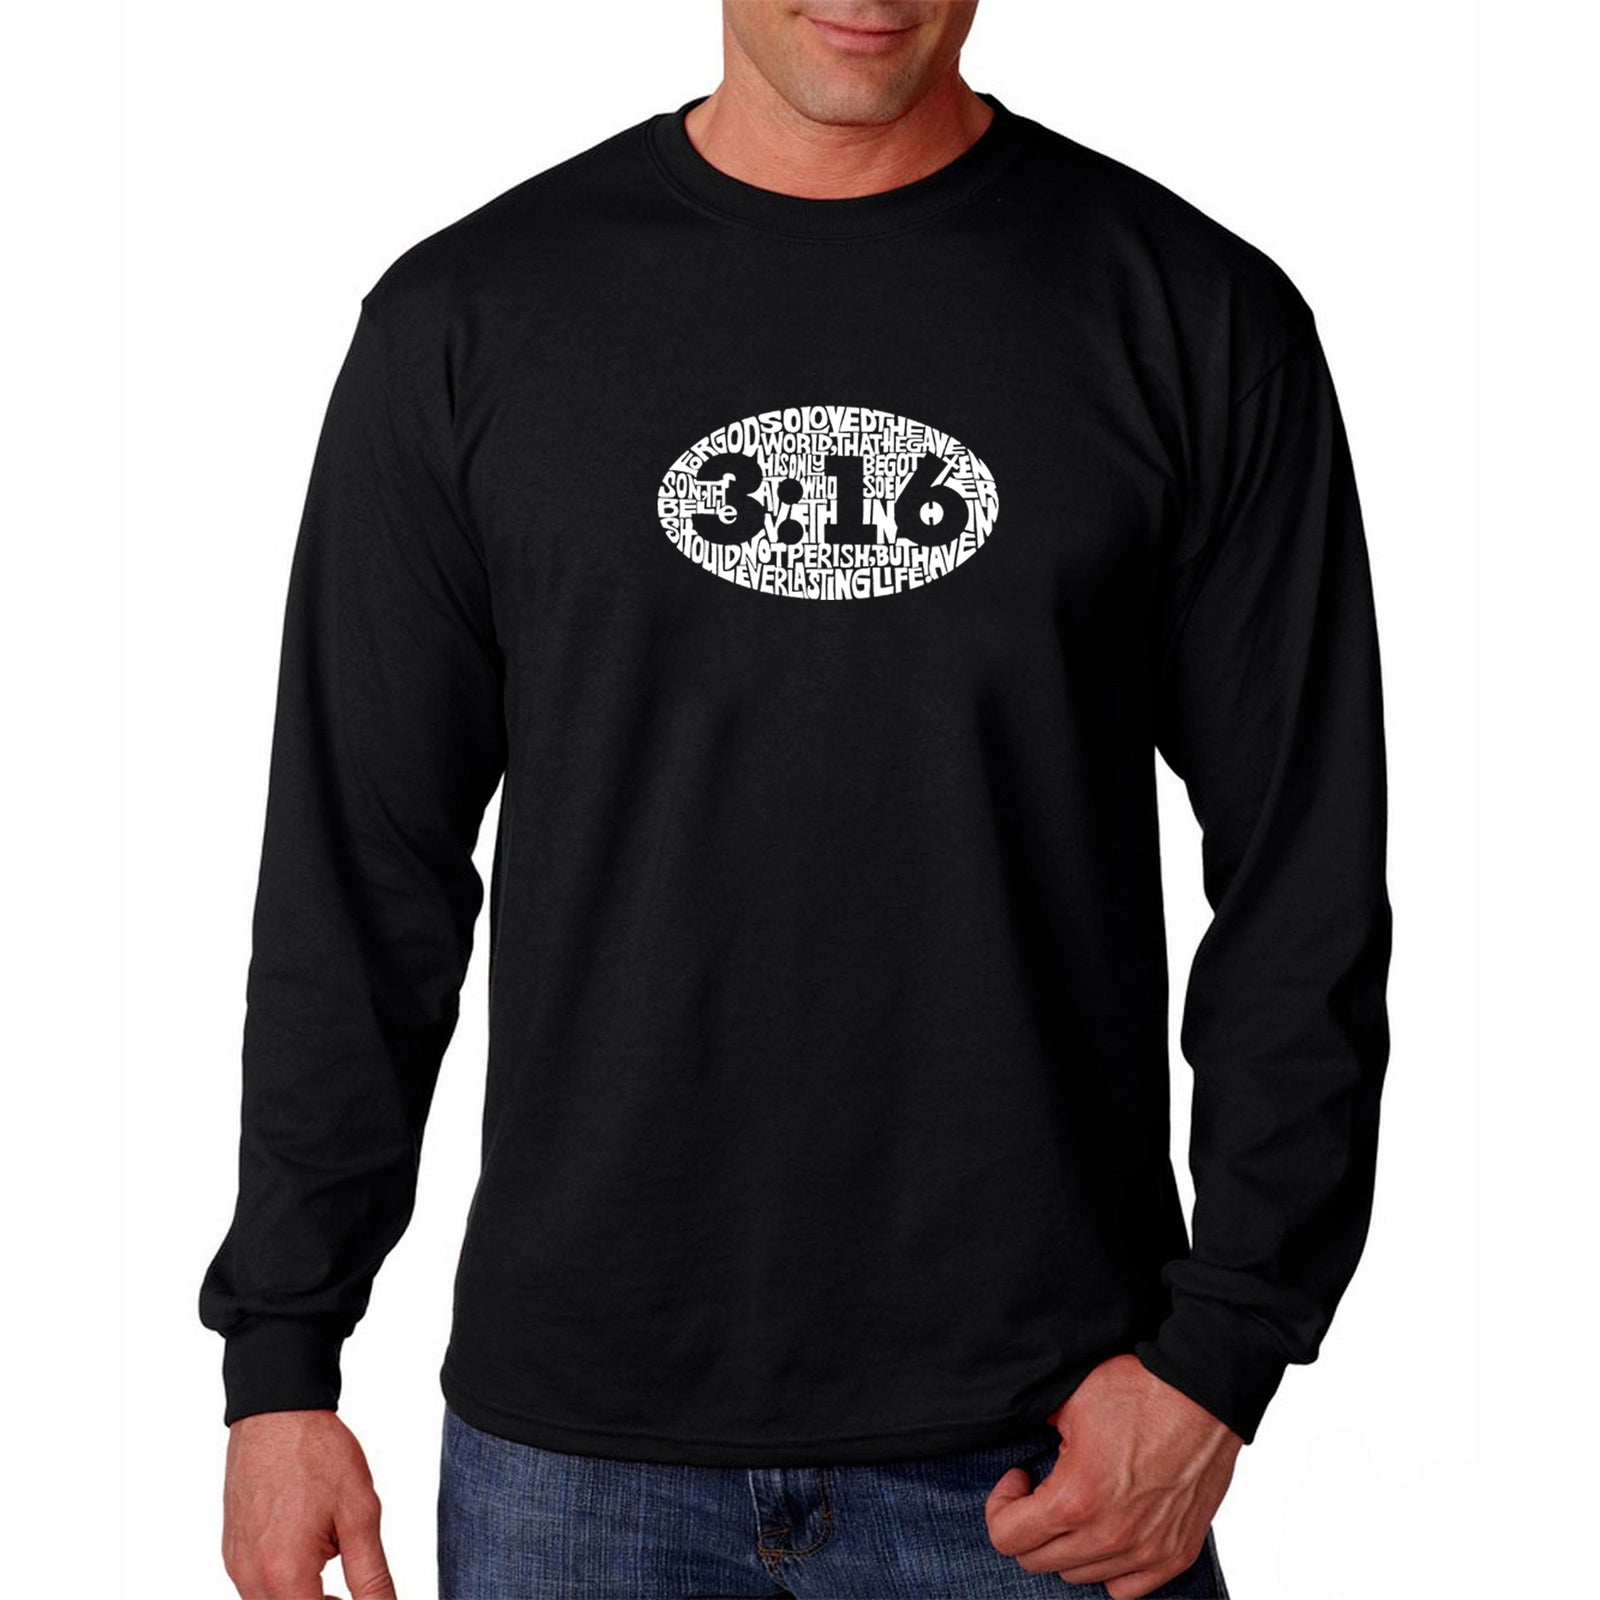 Men's Long Sleeve T-shirt - John 3:16